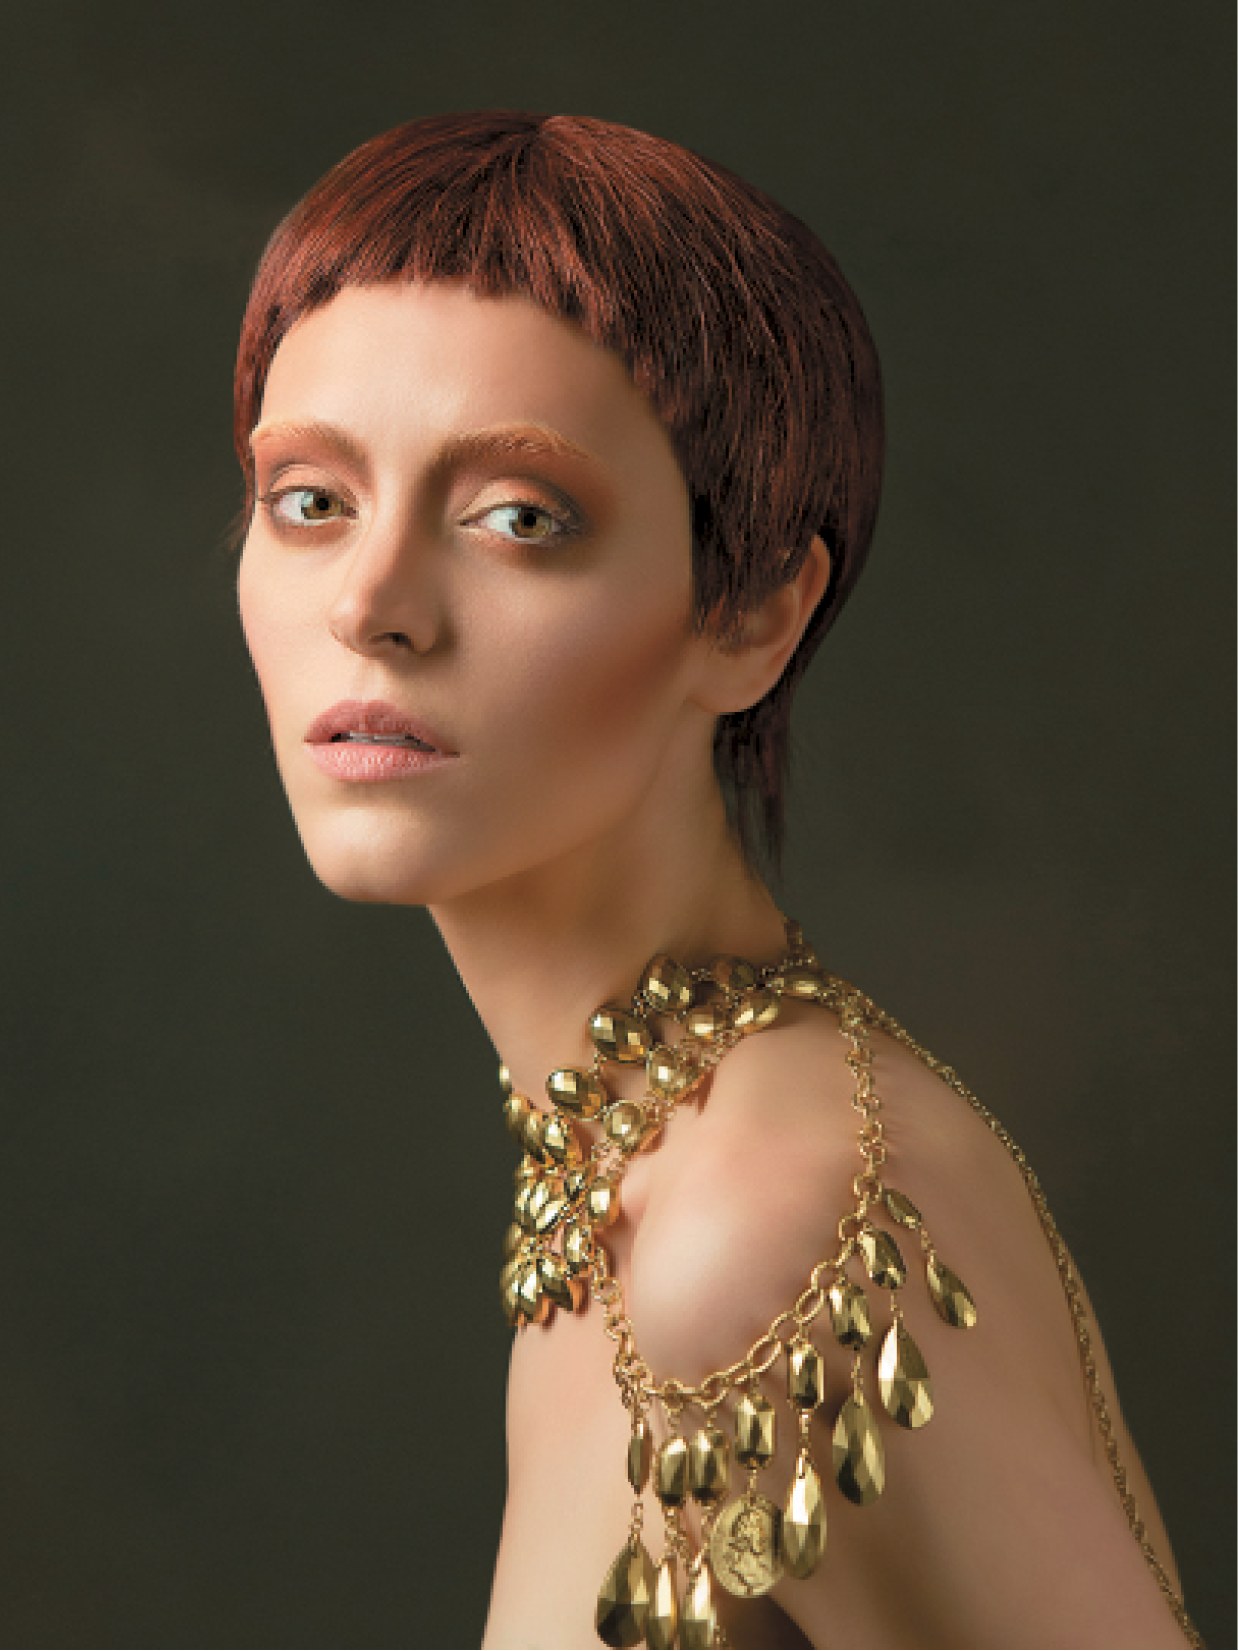 For this pixie crop, Whitmarsh used graduation cutting, keeping hair at the nape slightly longer and piecey. She cut the fringe about half an inch from the hairline and then point-cut into the hair, taking out large bits. She separated the fringe with Defining Whip.